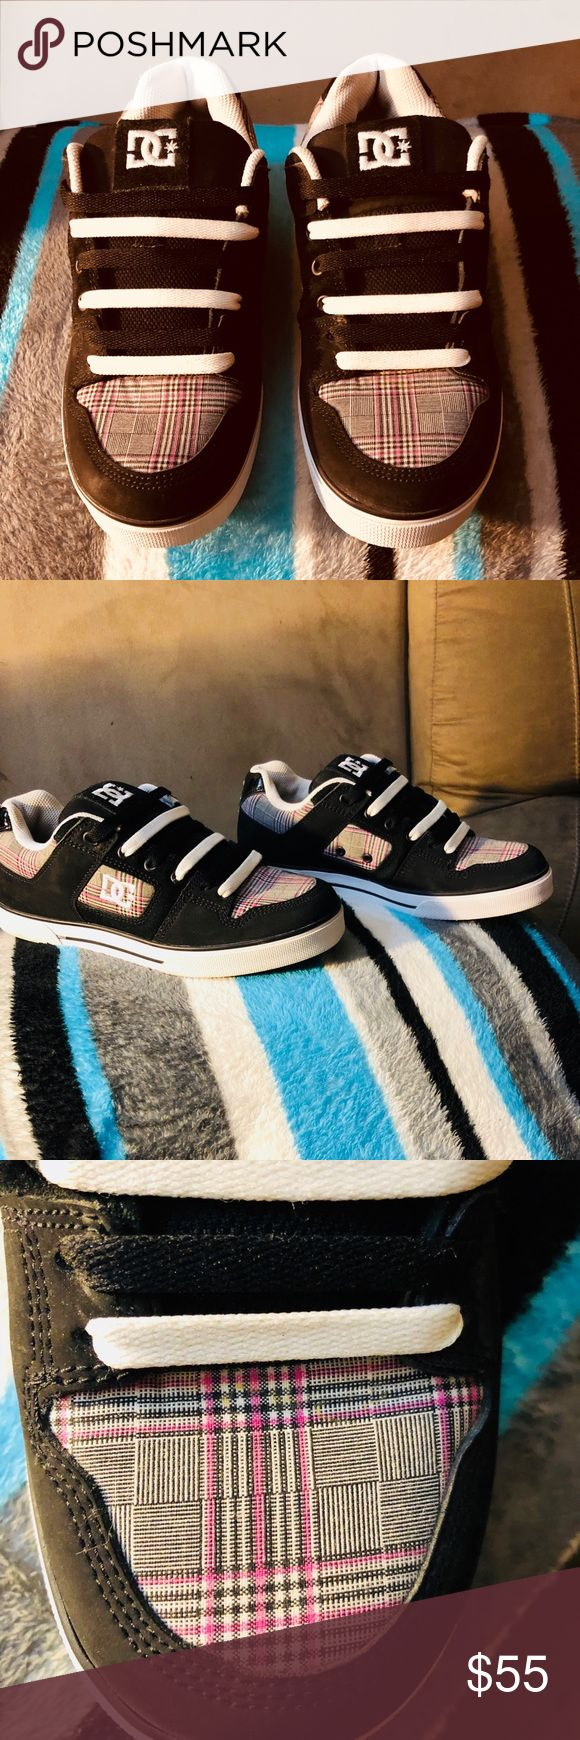 Women's DC sneakers Women's size 7.5 skateboard style sneakers by DC. Leather shoe with rubber soles, black and white sneaker with pink, black and white plaid print throughout. Worn just once. PERFECT CONDITION!! DC Shoes Athletic Shoes